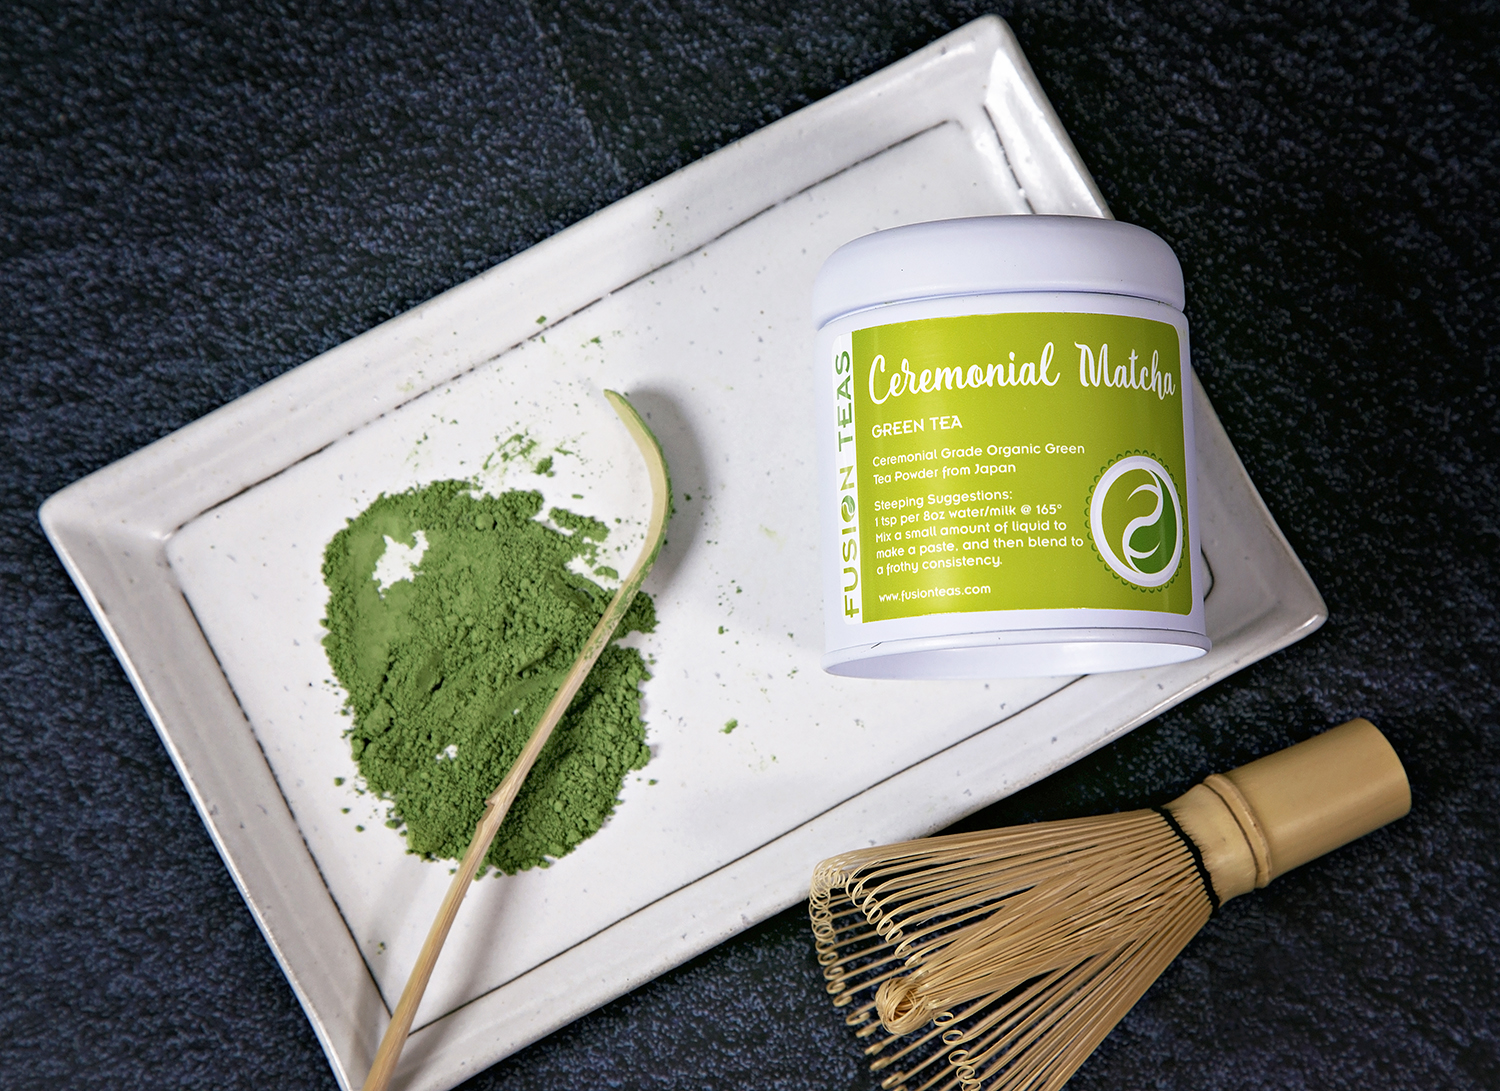 Matcha green tea powder ceremonial organic